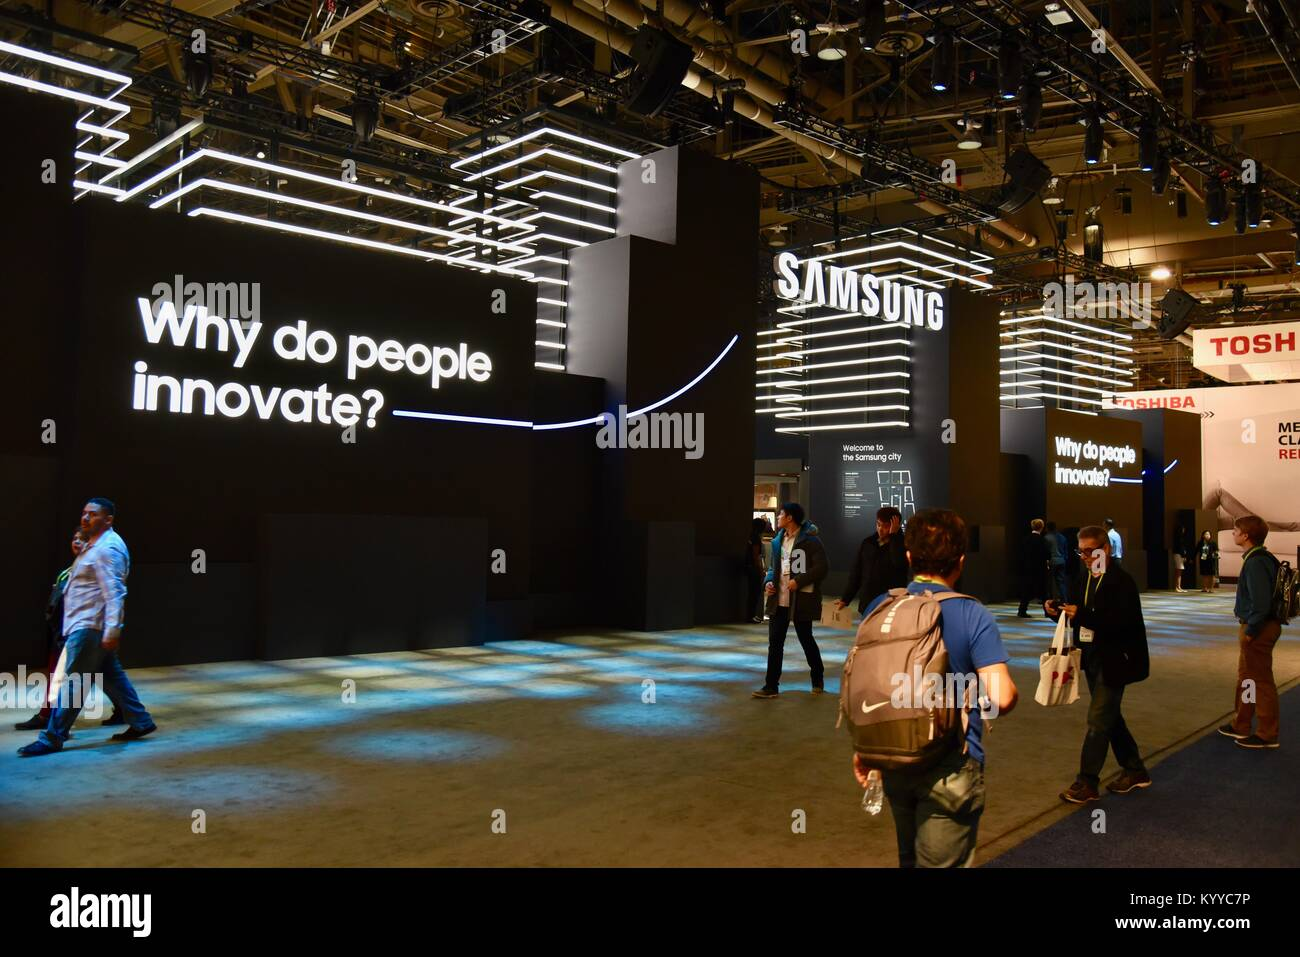 Exhibition Booth Las Vegas : Samsung booth display at ces consumer electronics show the